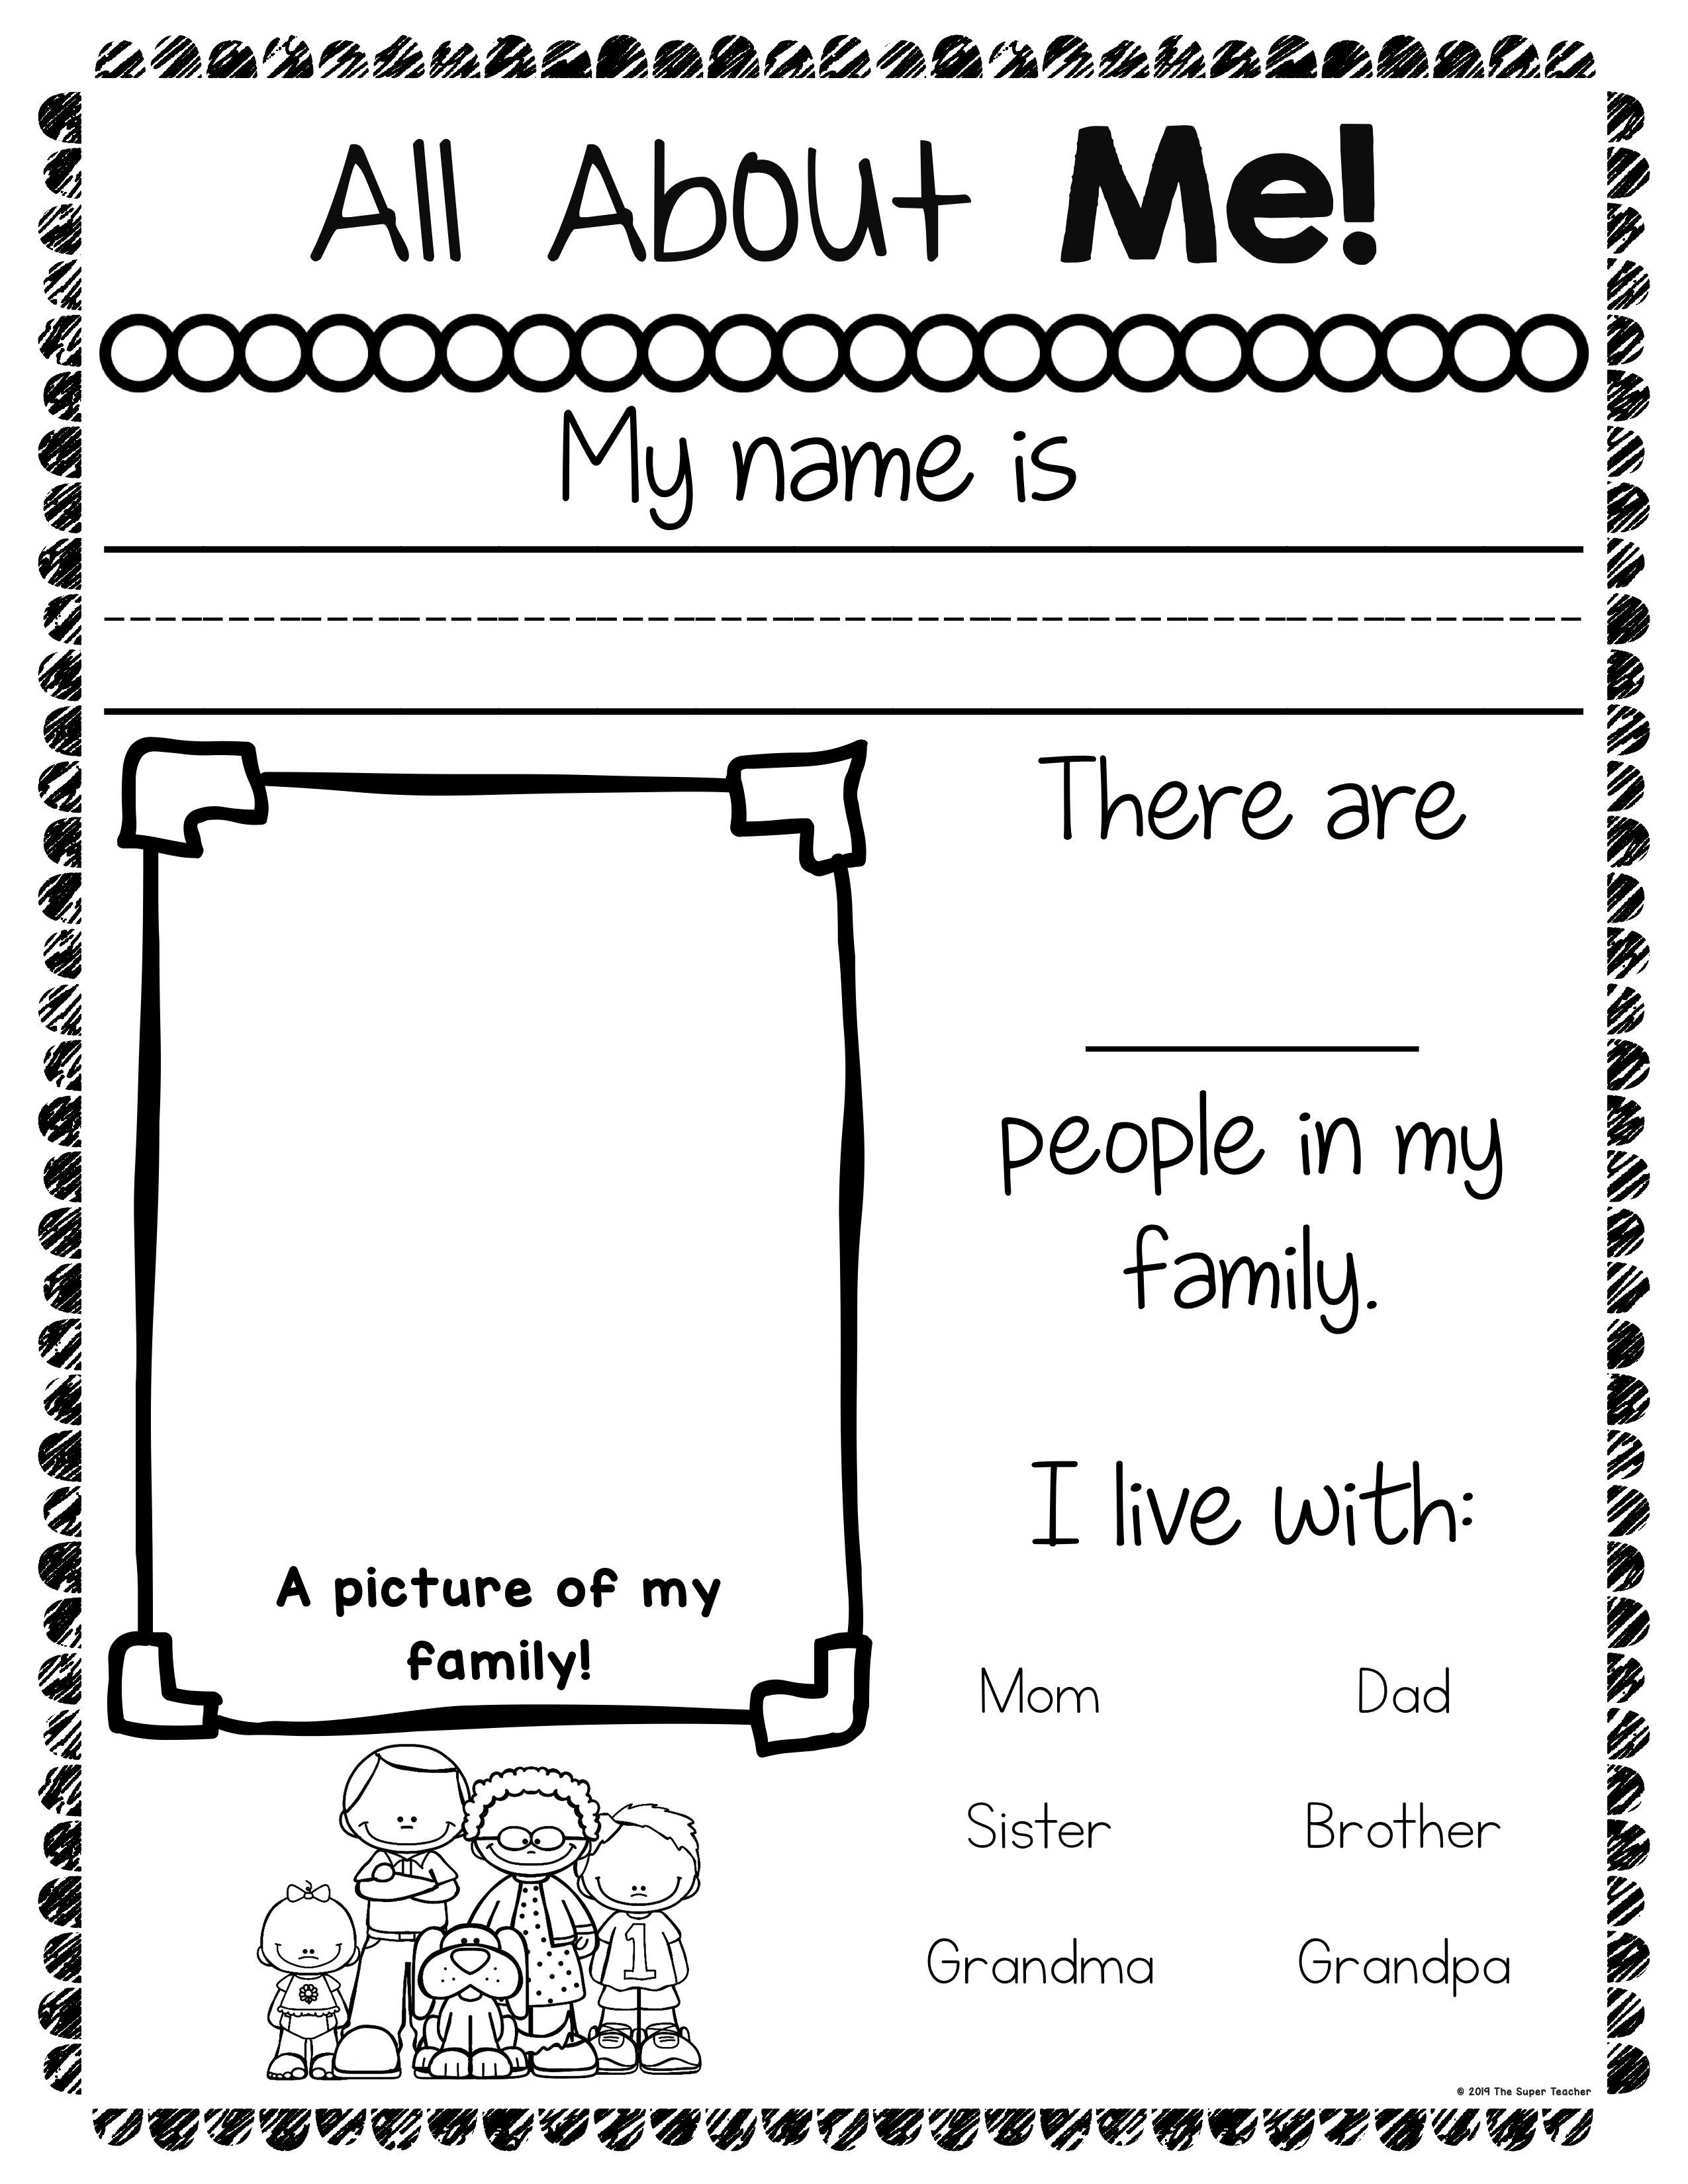 All About Me 003 Name Writing Practice Reading Skills Worksheets All About Me Book